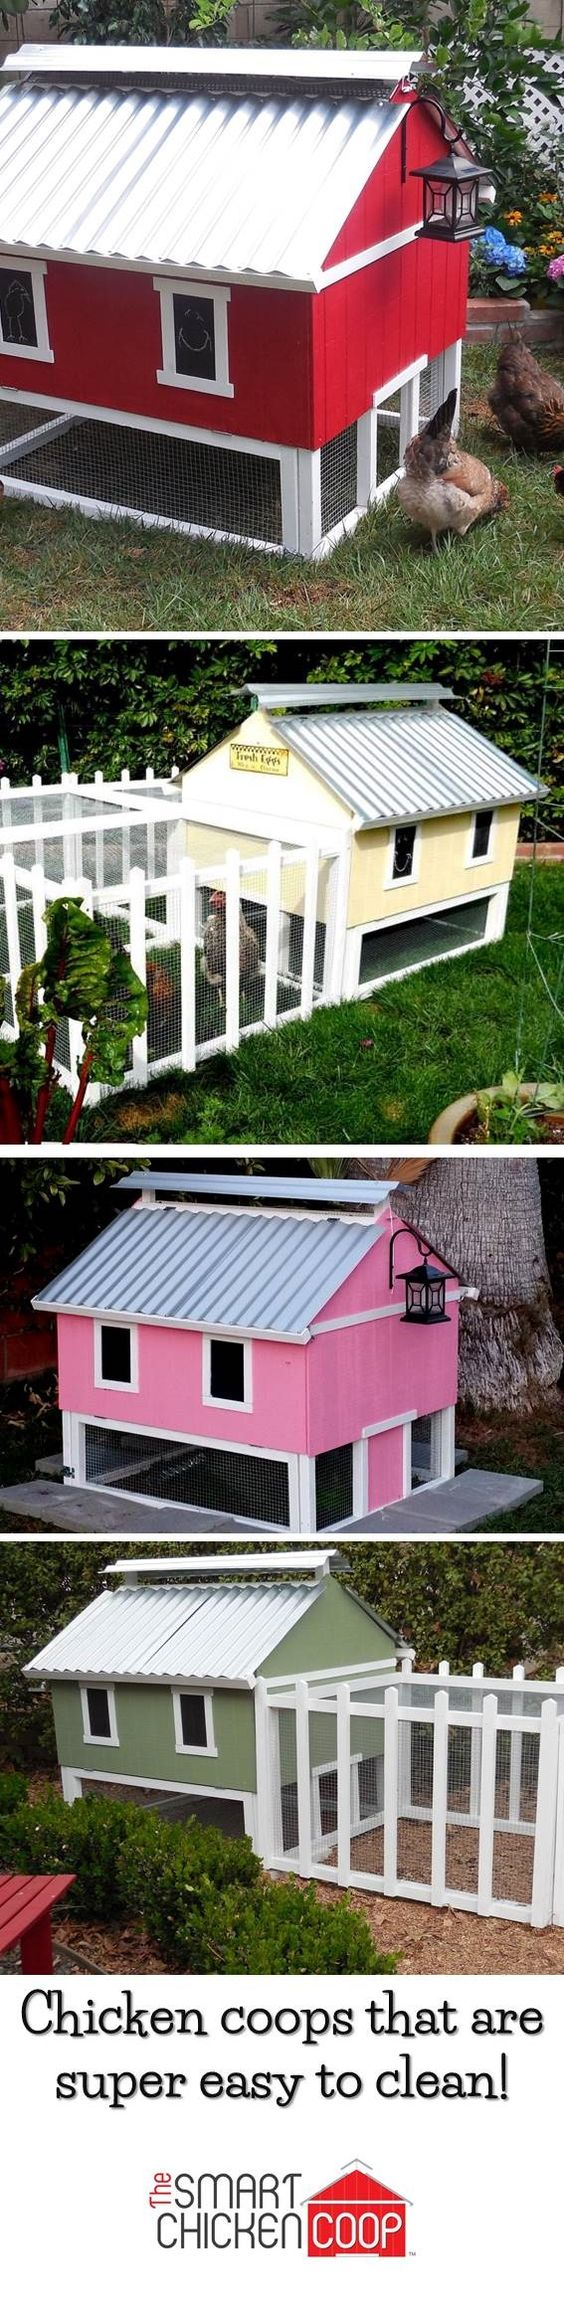 Cute Backyard Chicken Coops : Check out these cute backyard chicken coops! I can paint it to match